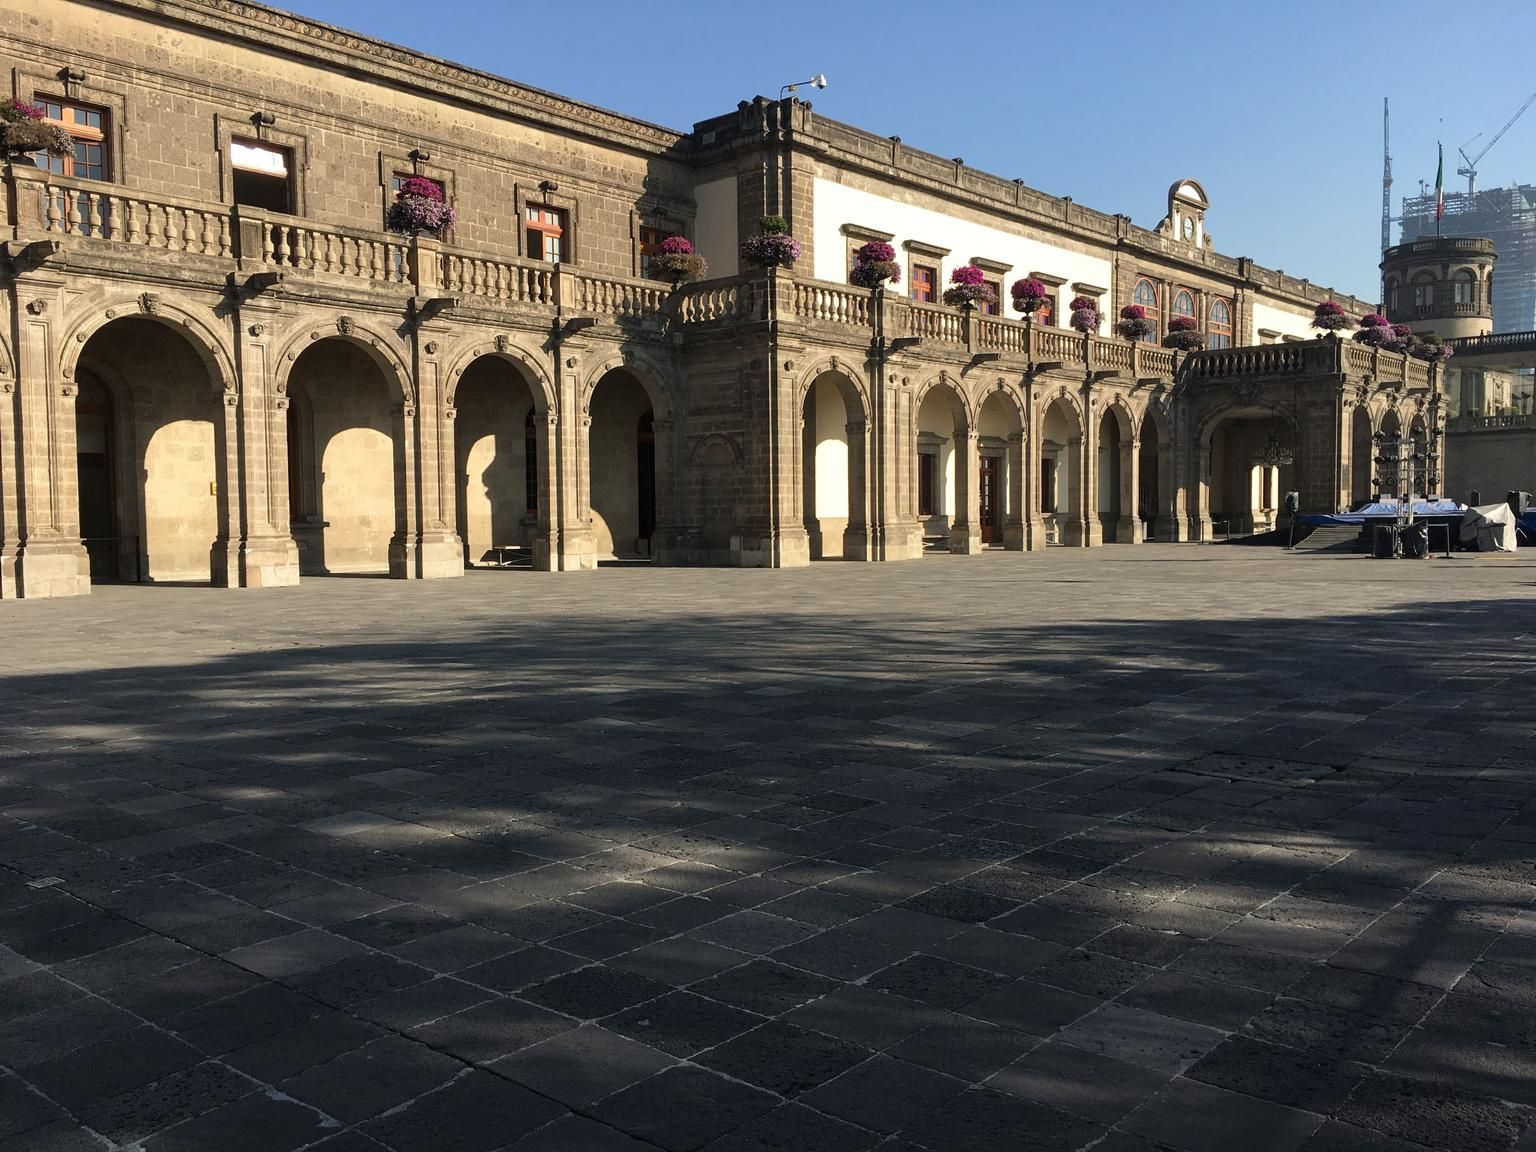 MAIS FOTOS, Private Mexico City Tour with Chapultepec Castle Visit